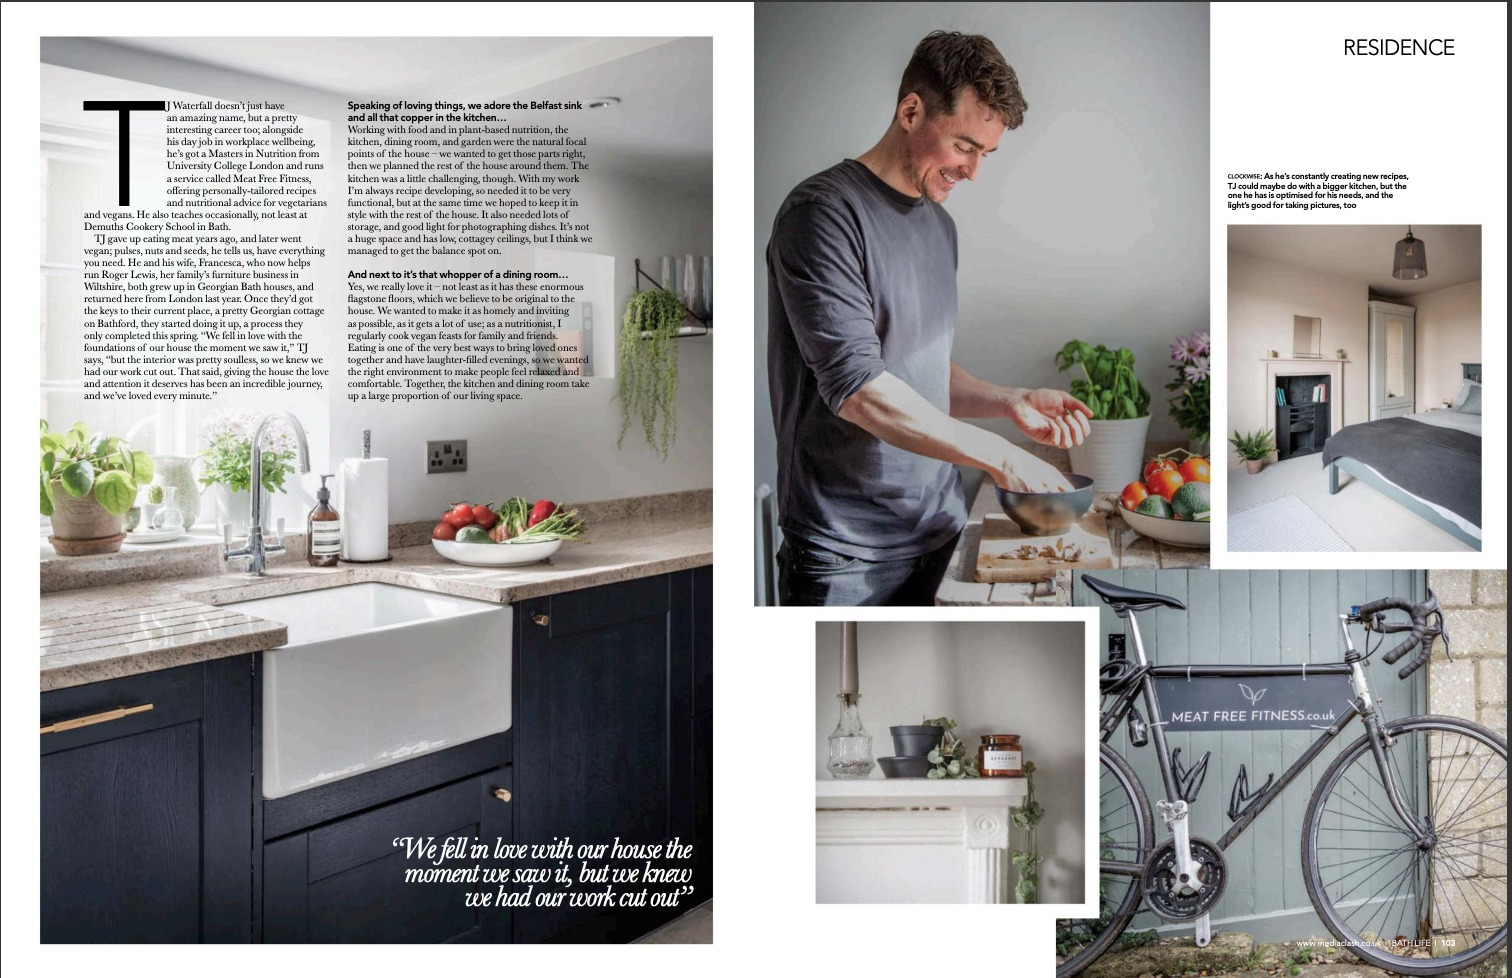 vegan nutritionist tj waterfall bath life magazine feature interview article meat free fitness